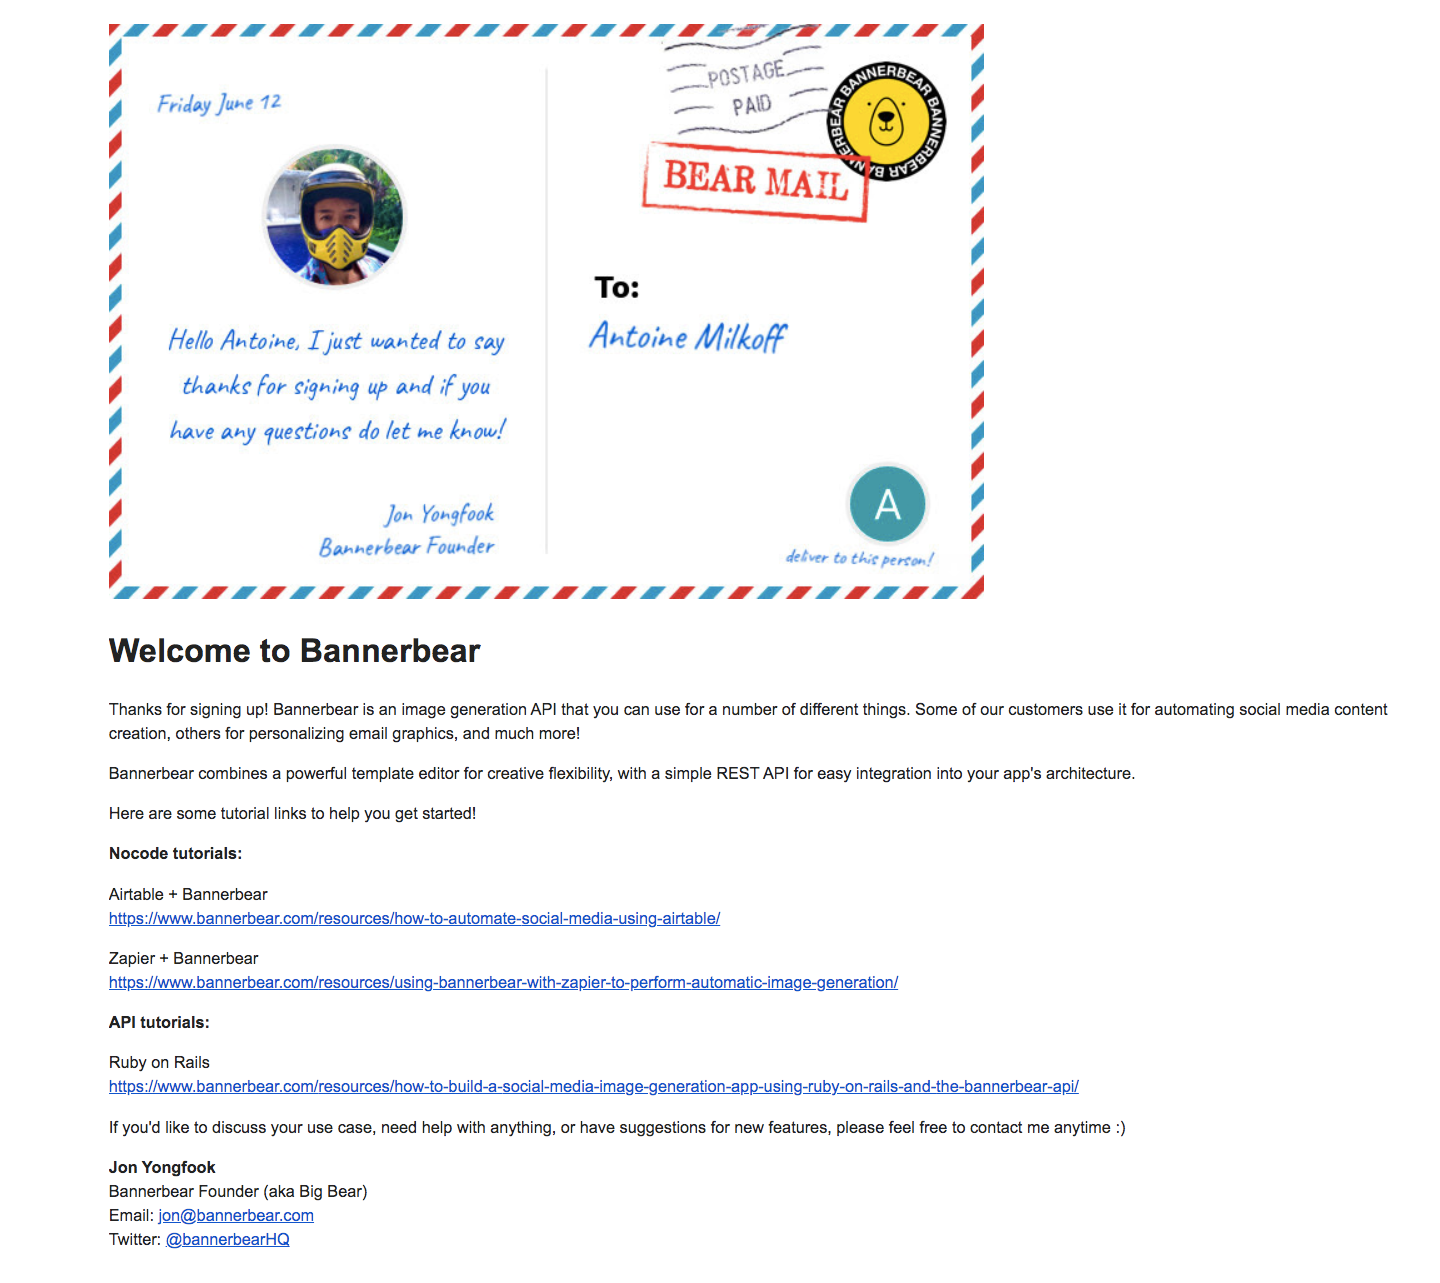 Bannerbear Welcome Email